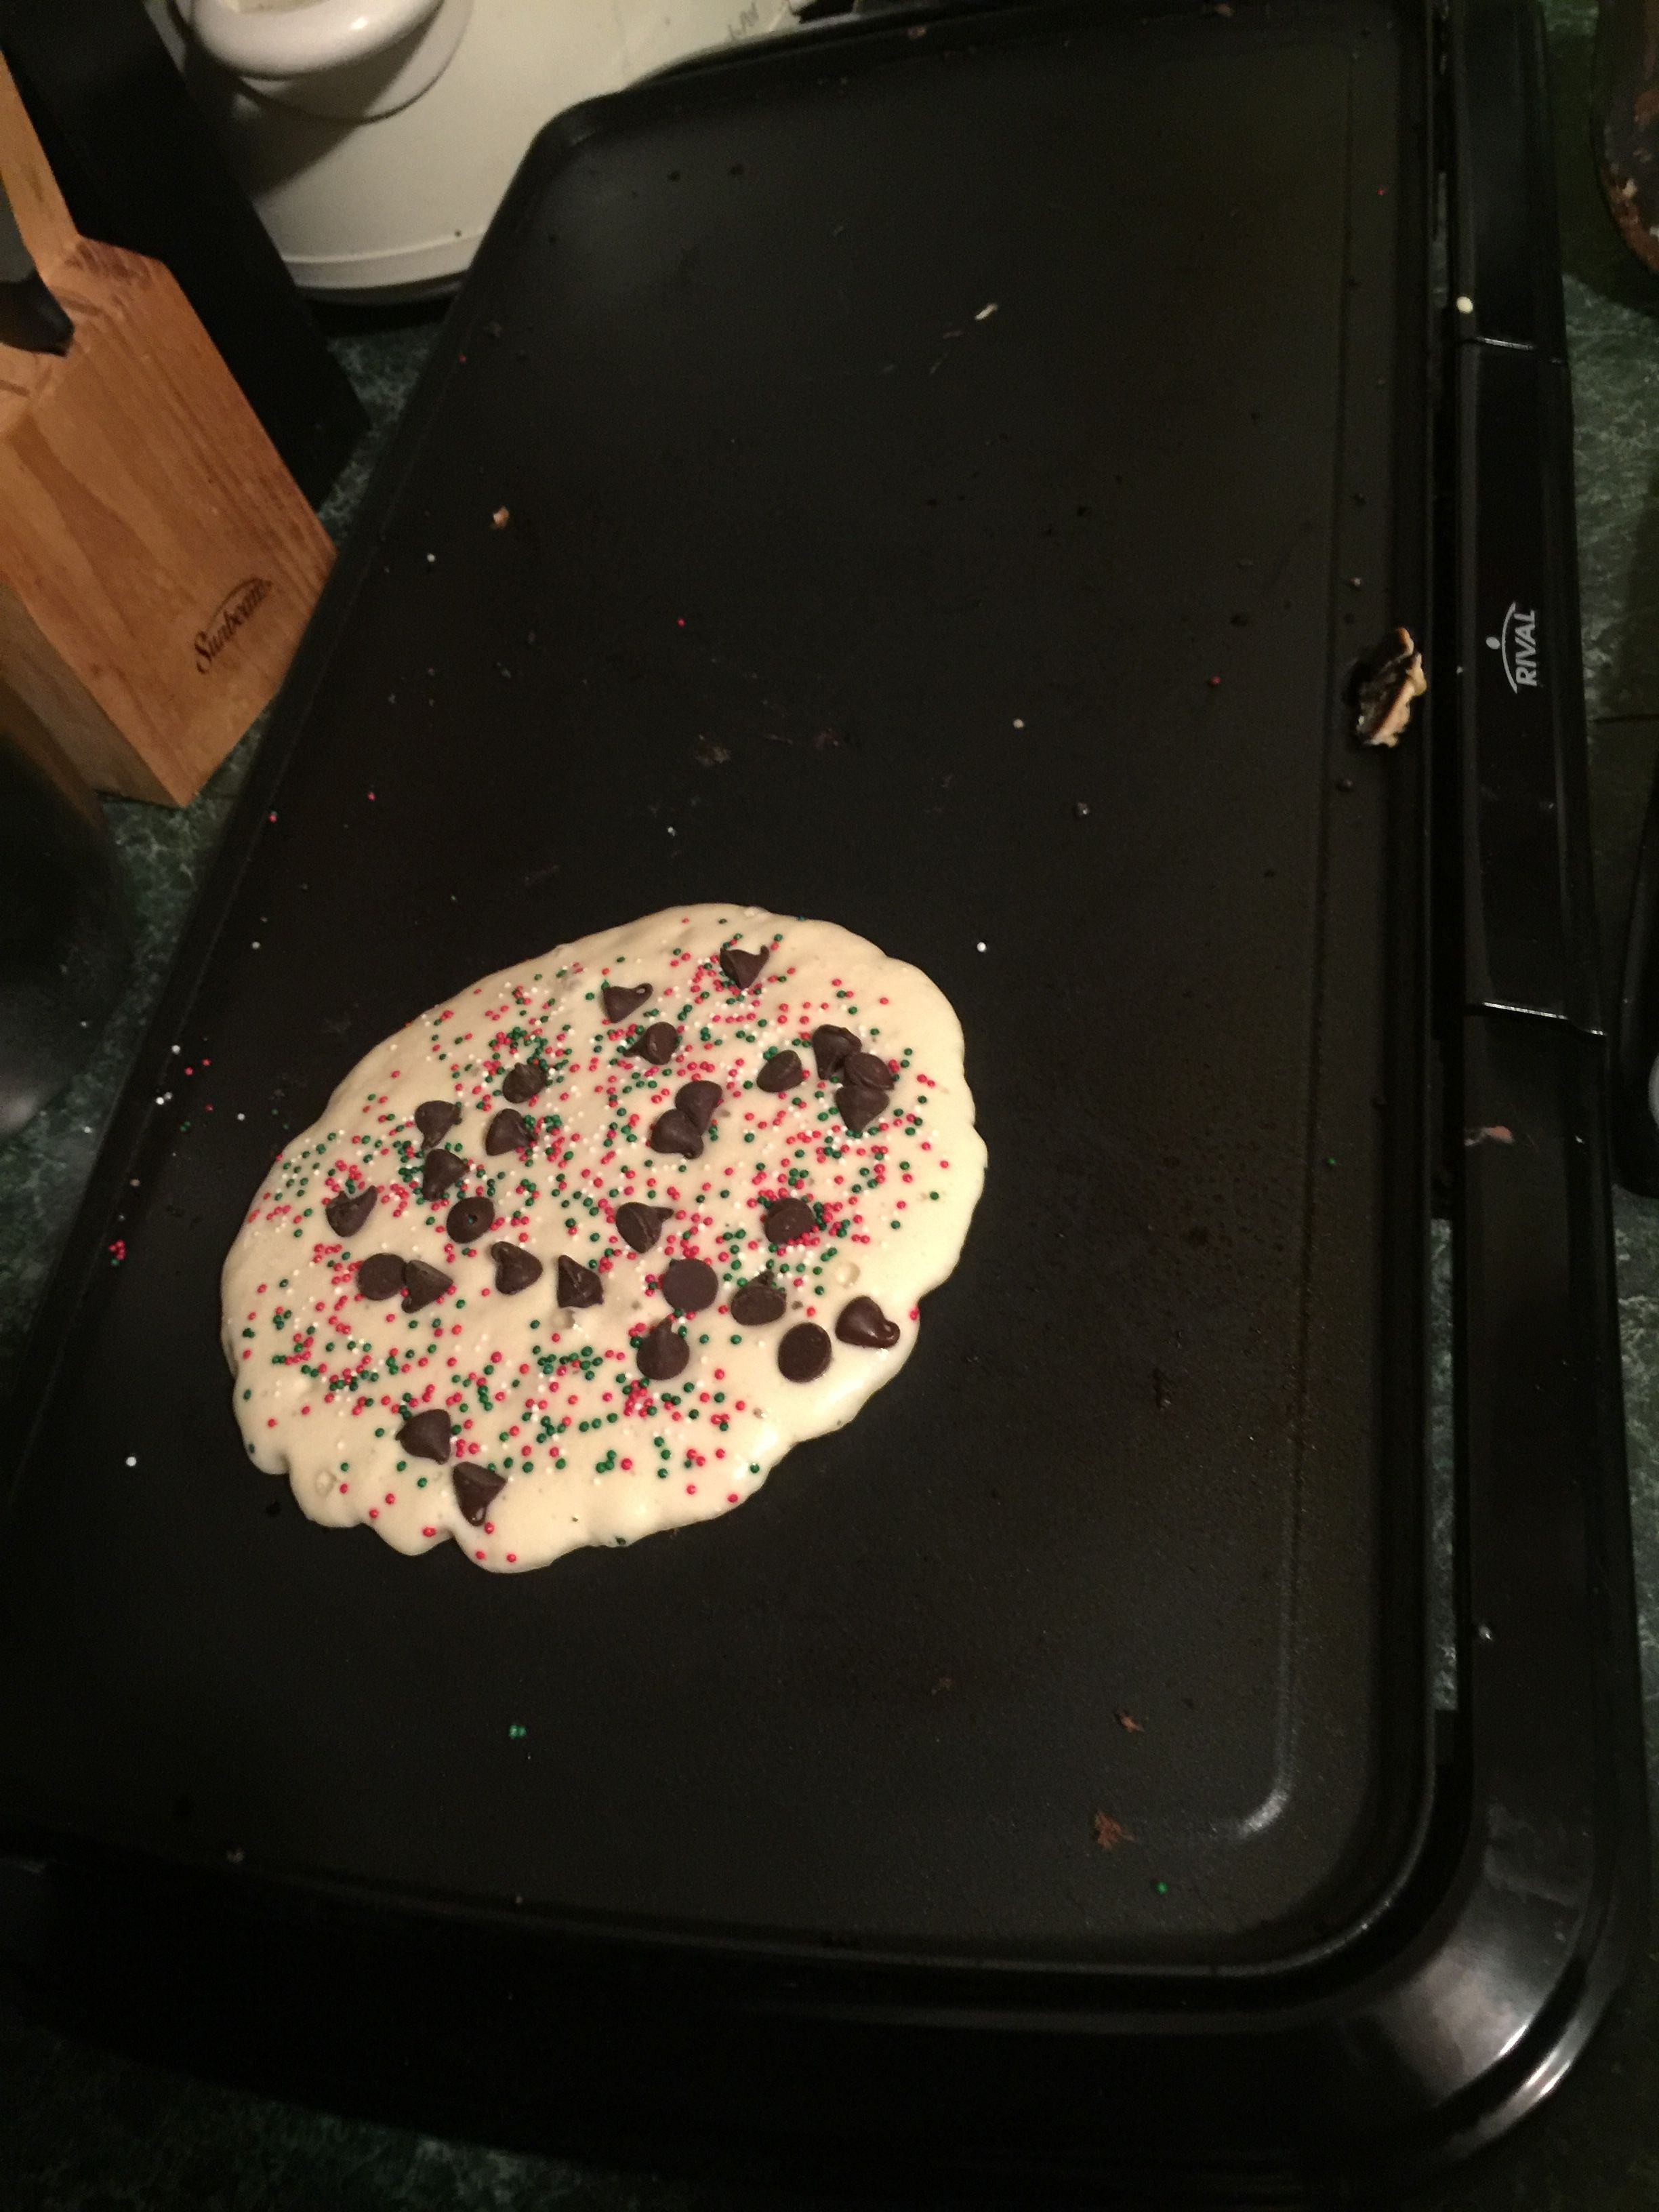 Christmas pancakes (Red & green sprinkles)  Why? Cause that's what the advent calendar said!  Much fun!